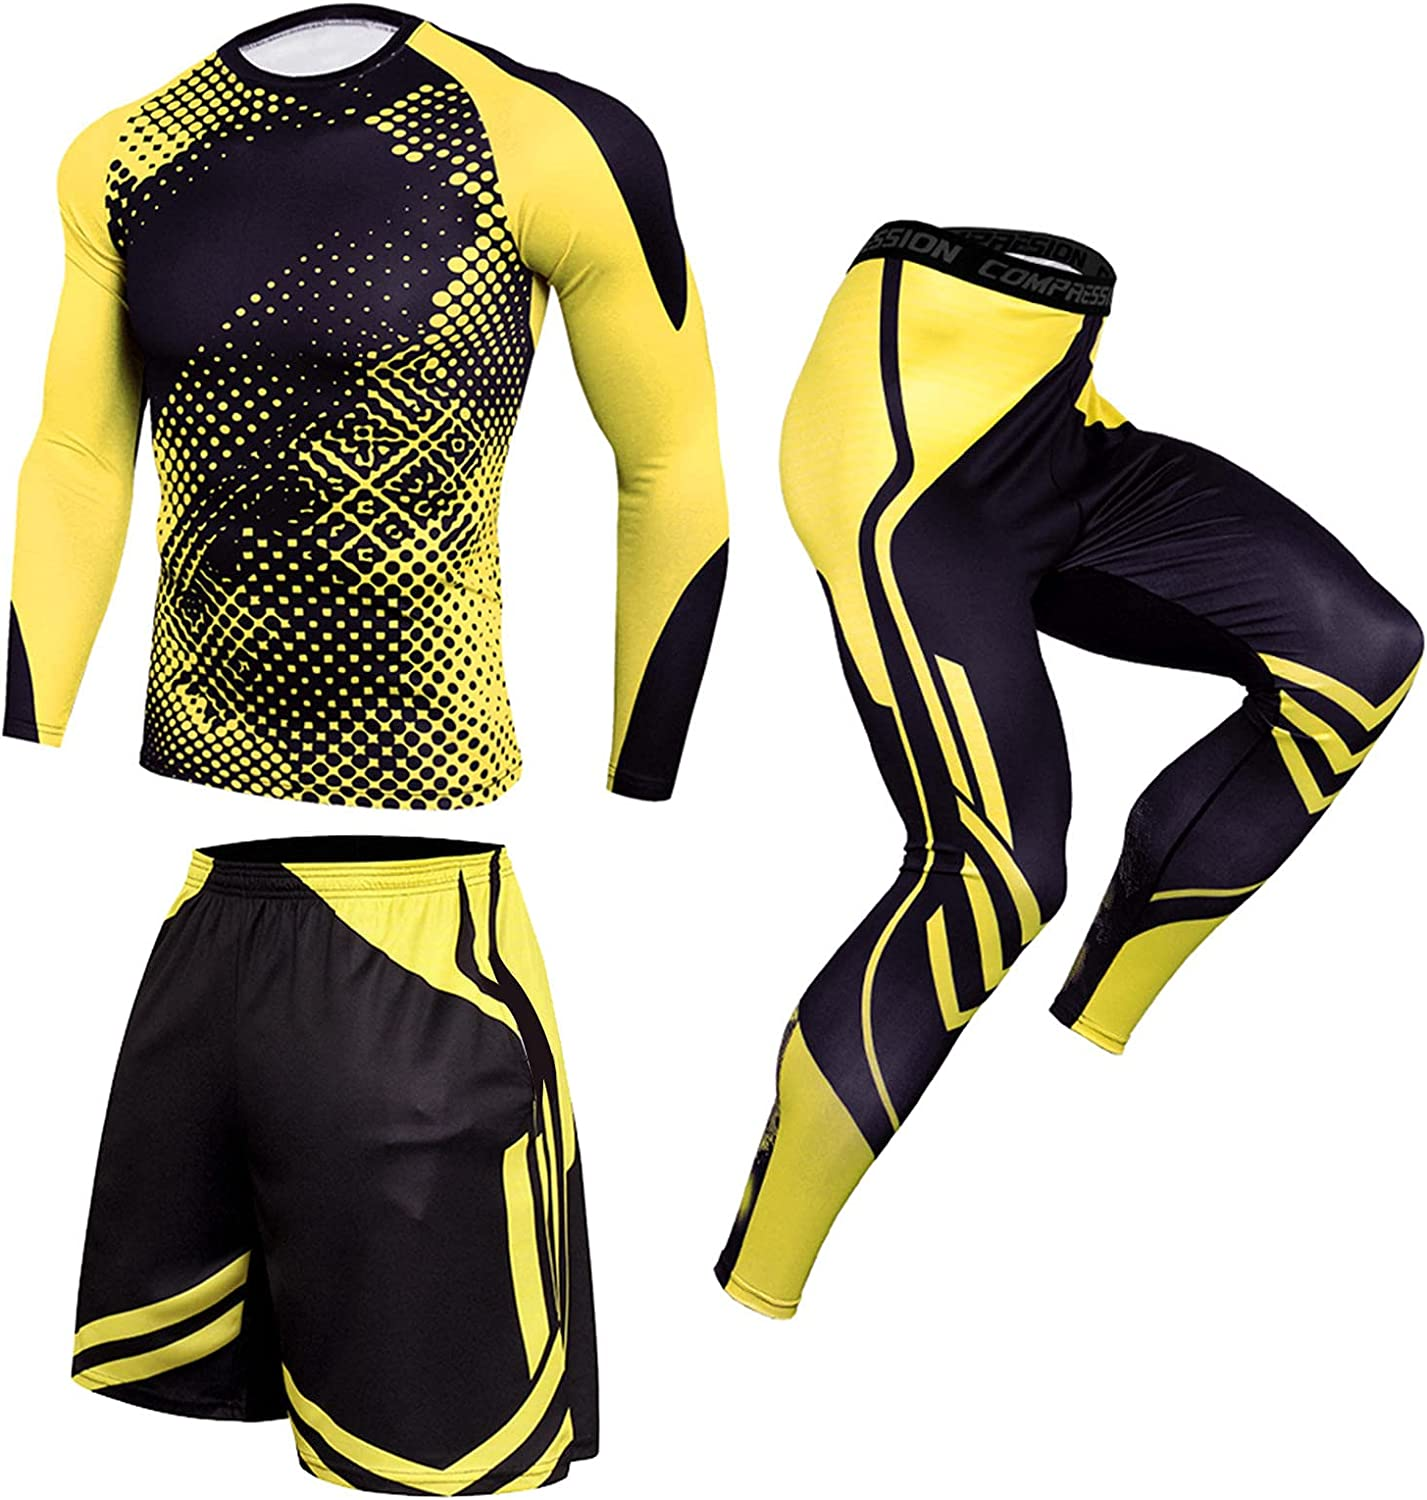 Maryia 2021 Mens Outdoor Outfits Summer Casual Long Sleeve Fashion Gym Workout Running Athletic Sports Set